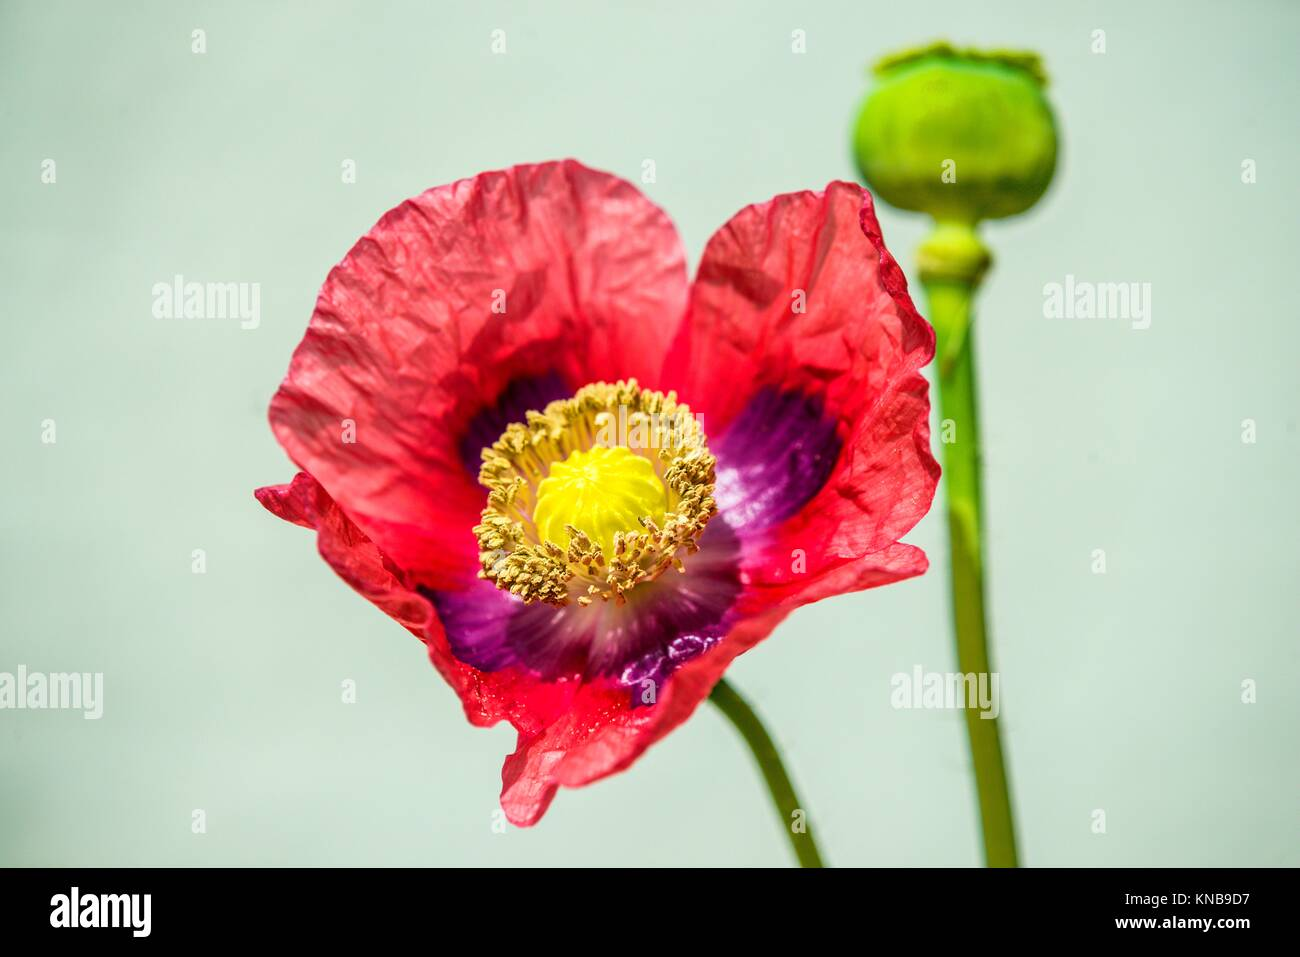 Opium poppy flower and capsule stock photo 168049987 alamy opium poppy flower and capsule mightylinksfo